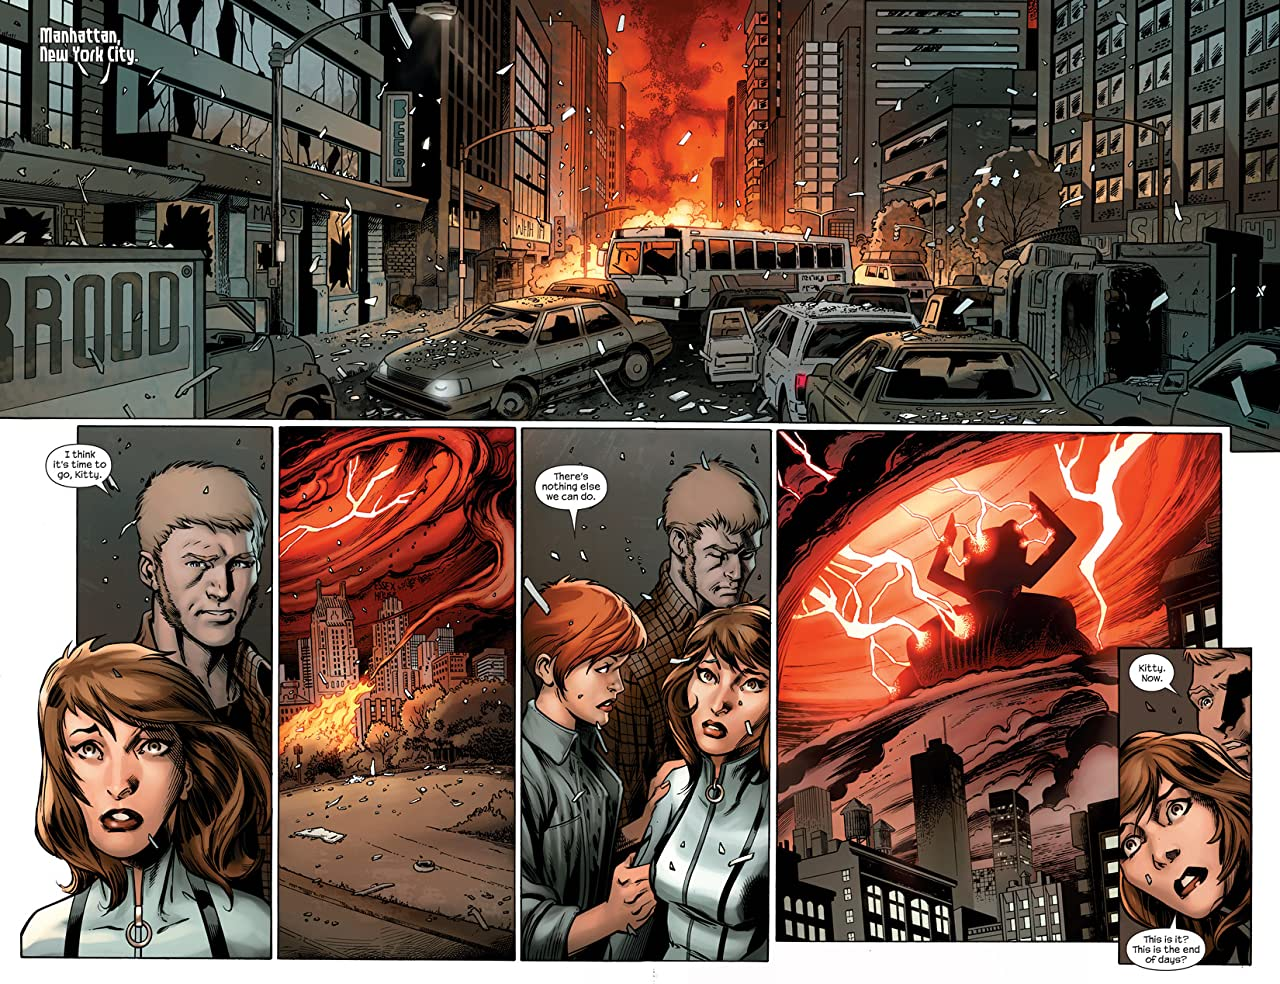 Cataclysm: The Ultimates' Last Stand #4 (of 5)